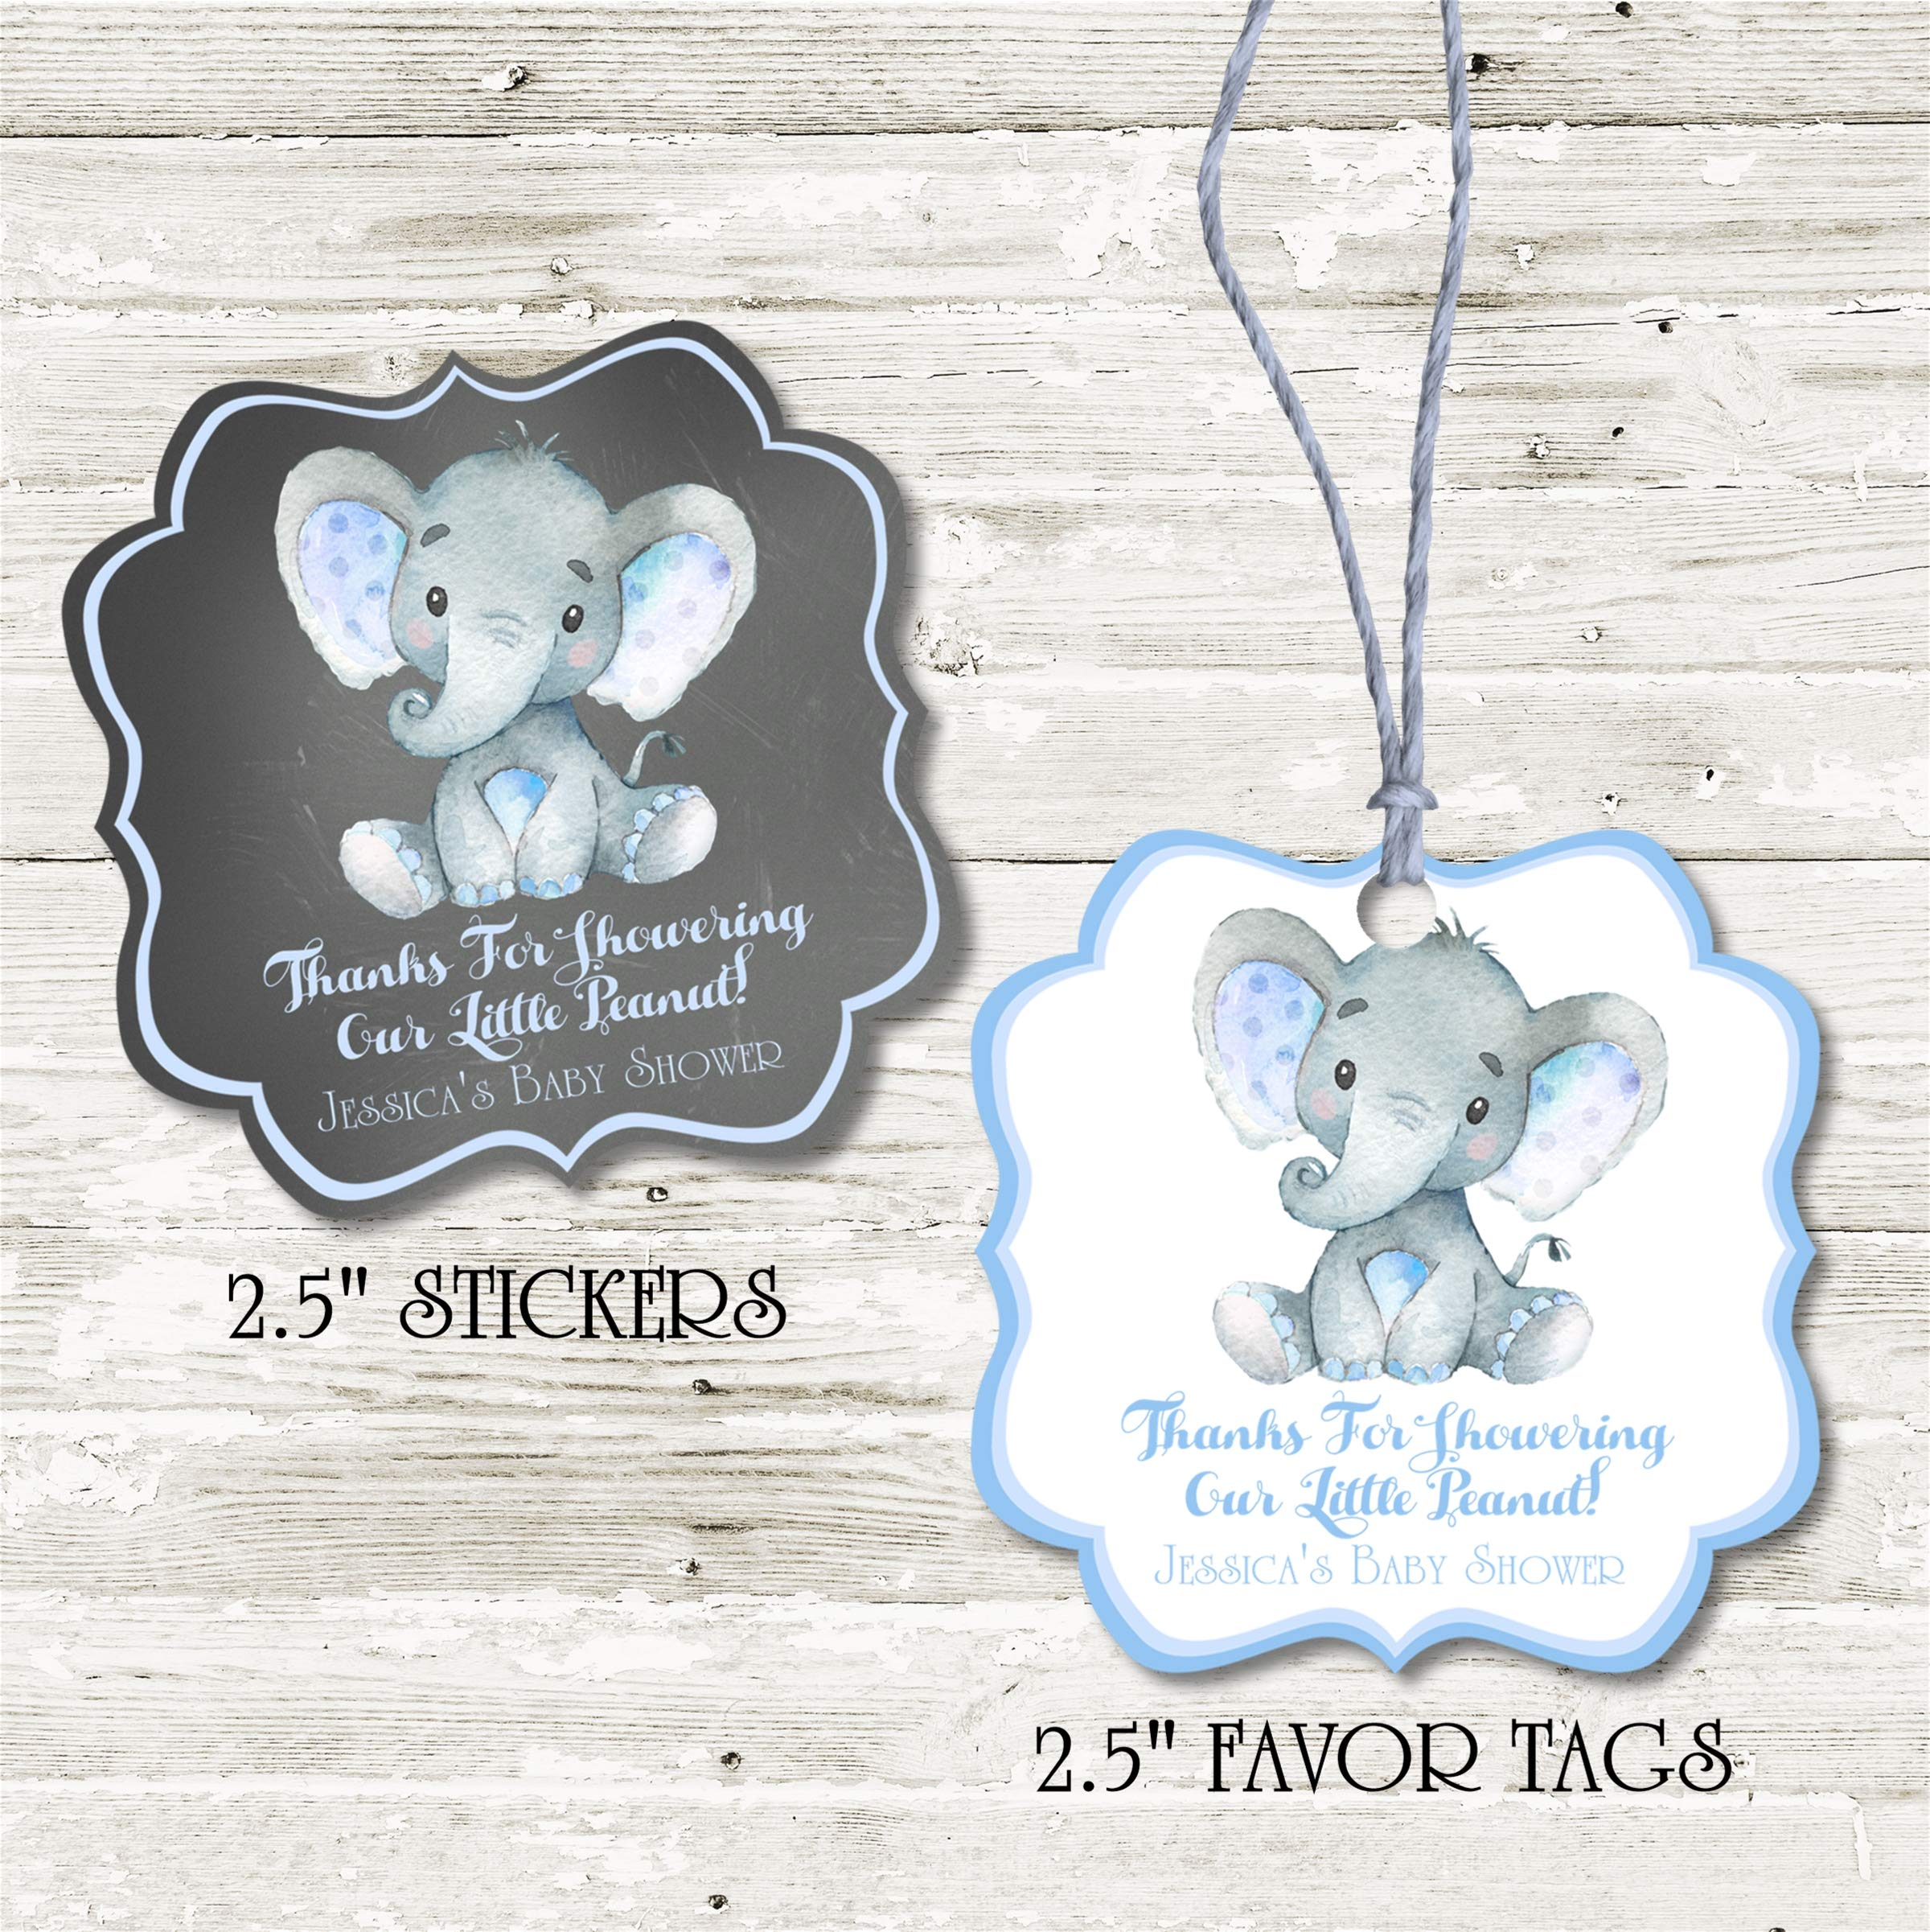 Boys Blue Elephant Baby Shower Favor Stickers, Boys Blue Elephant Baby Shower Favor Tags, Boys Blue Elephant Baby Shower Decorations, Boys Blue Elephant Baby Shower Supplies